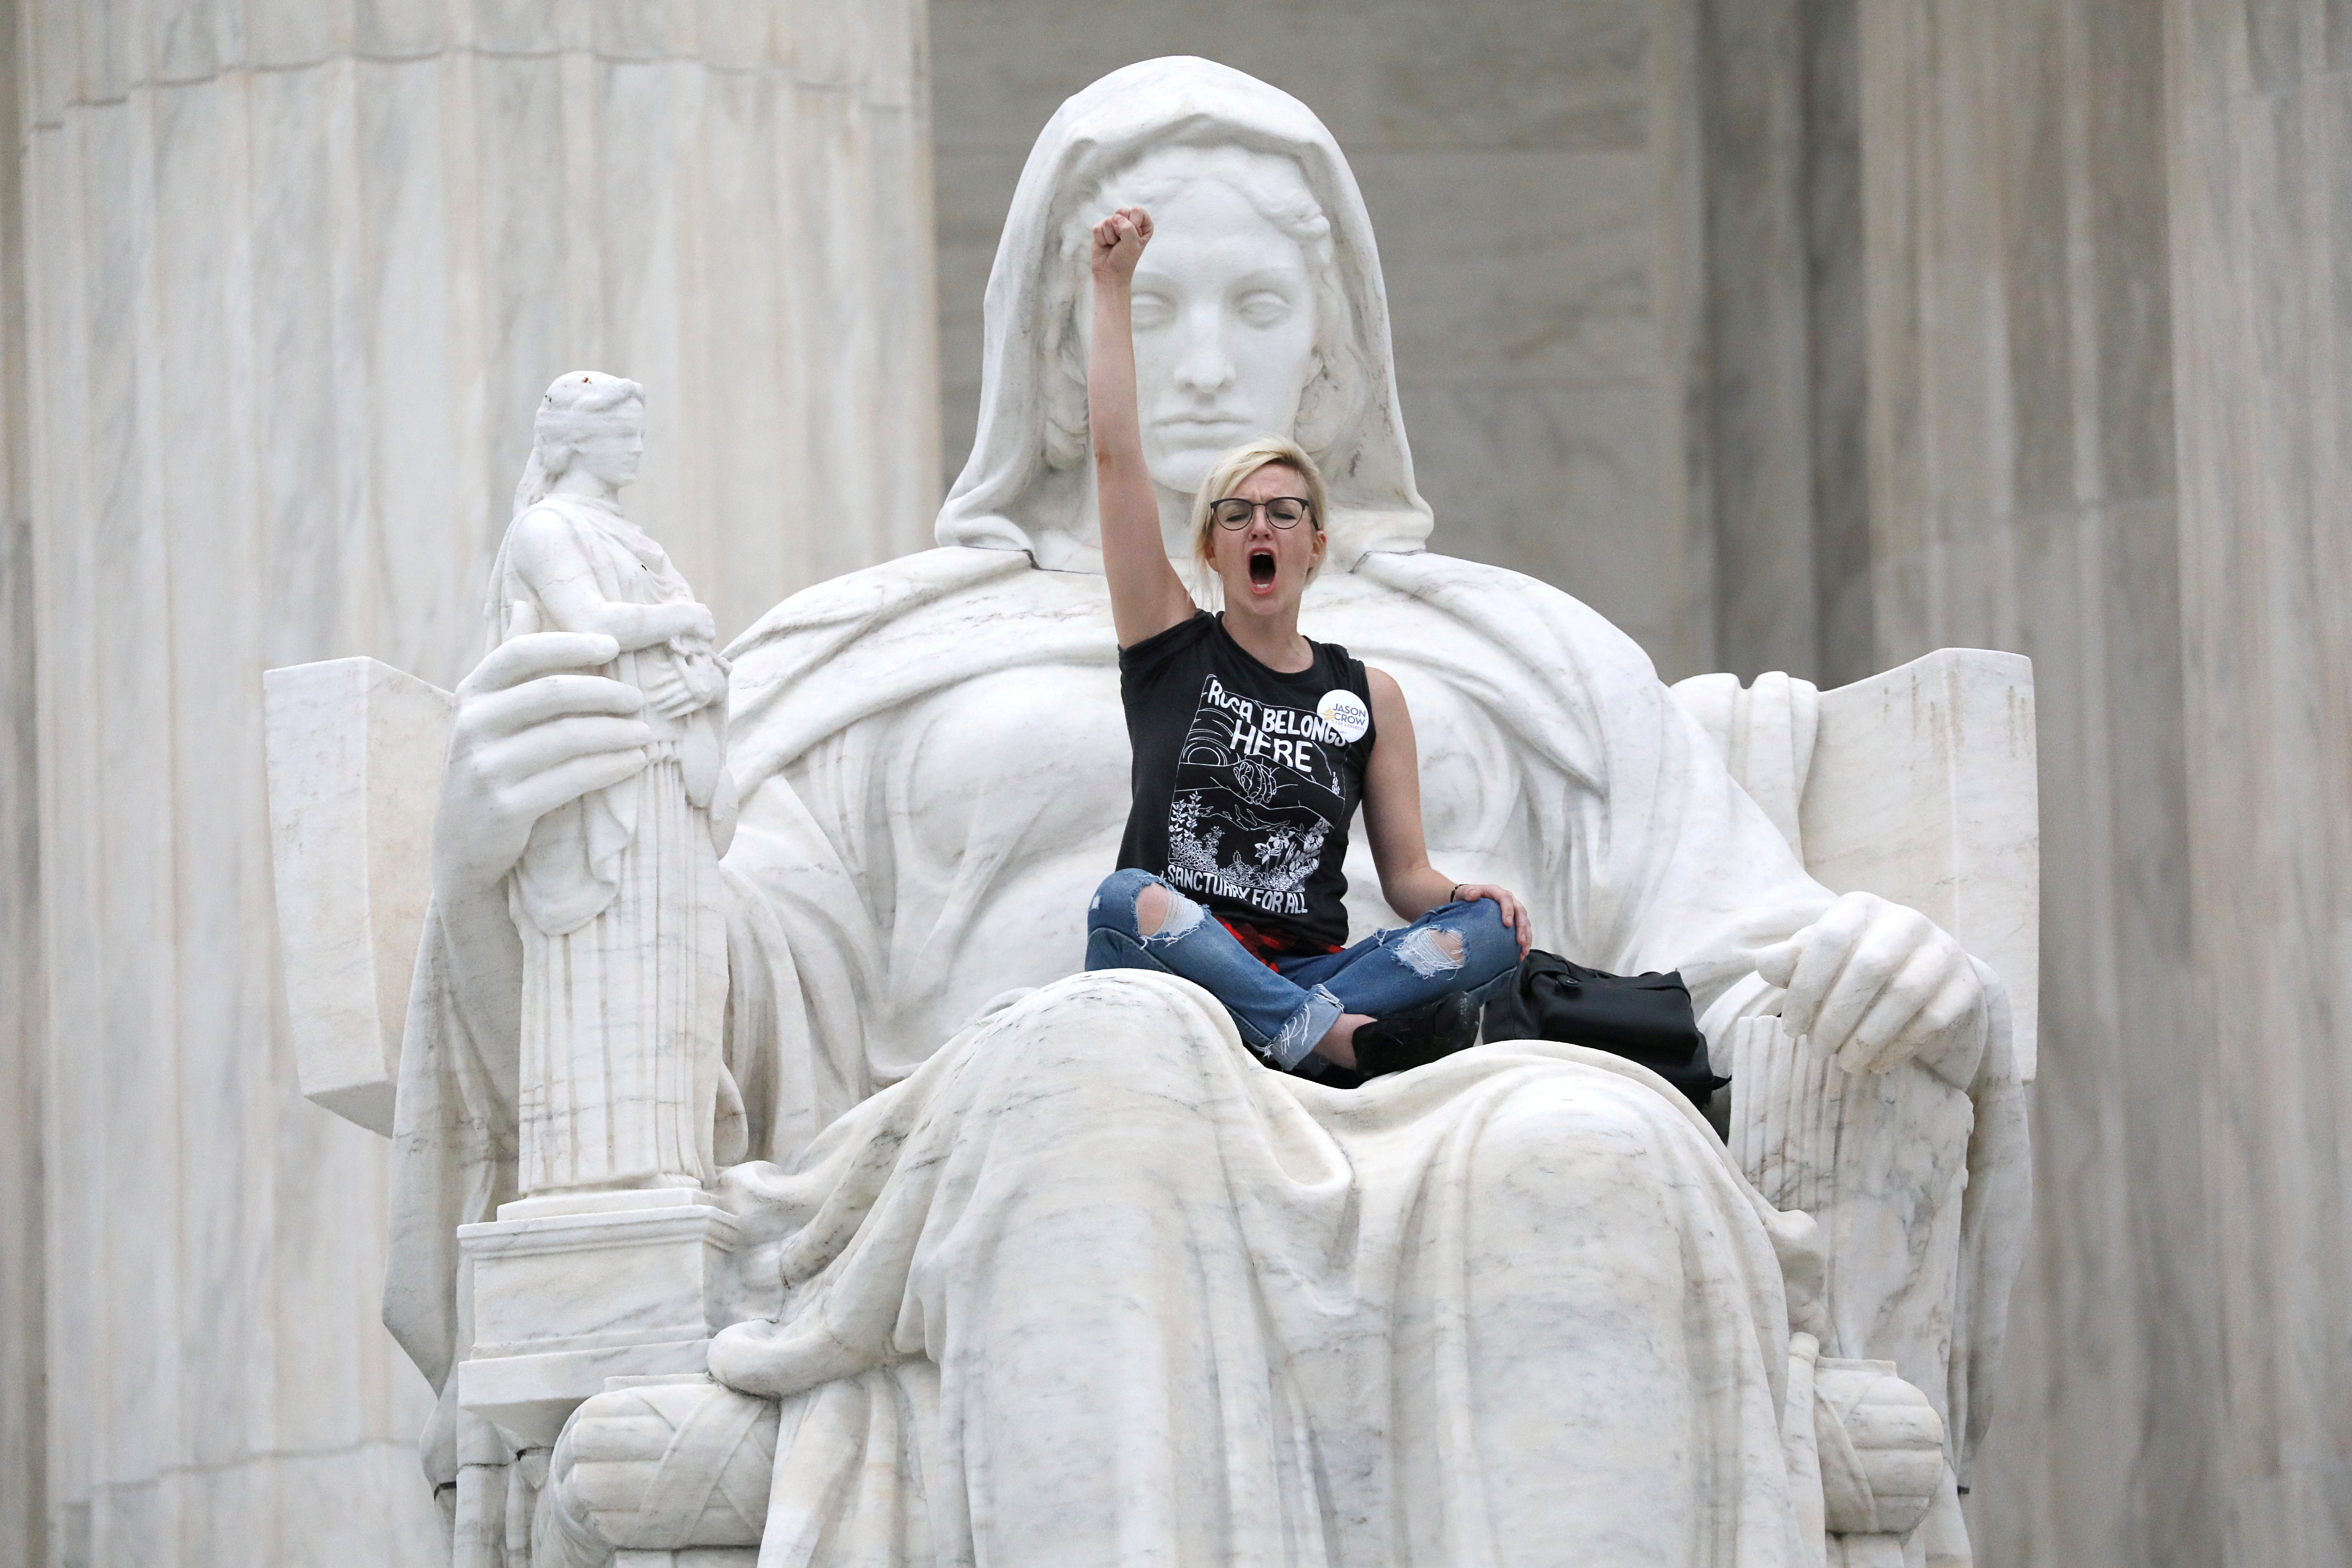 "A protester sits on the lap of ""Lady Justice"" on the steps of the U.S. Supreme Court building as demonstrators storm the steps and doors while Judge Brett Kavanaugh is inside being sworn in as an justice. REUTERS/Jonathan Ernst"